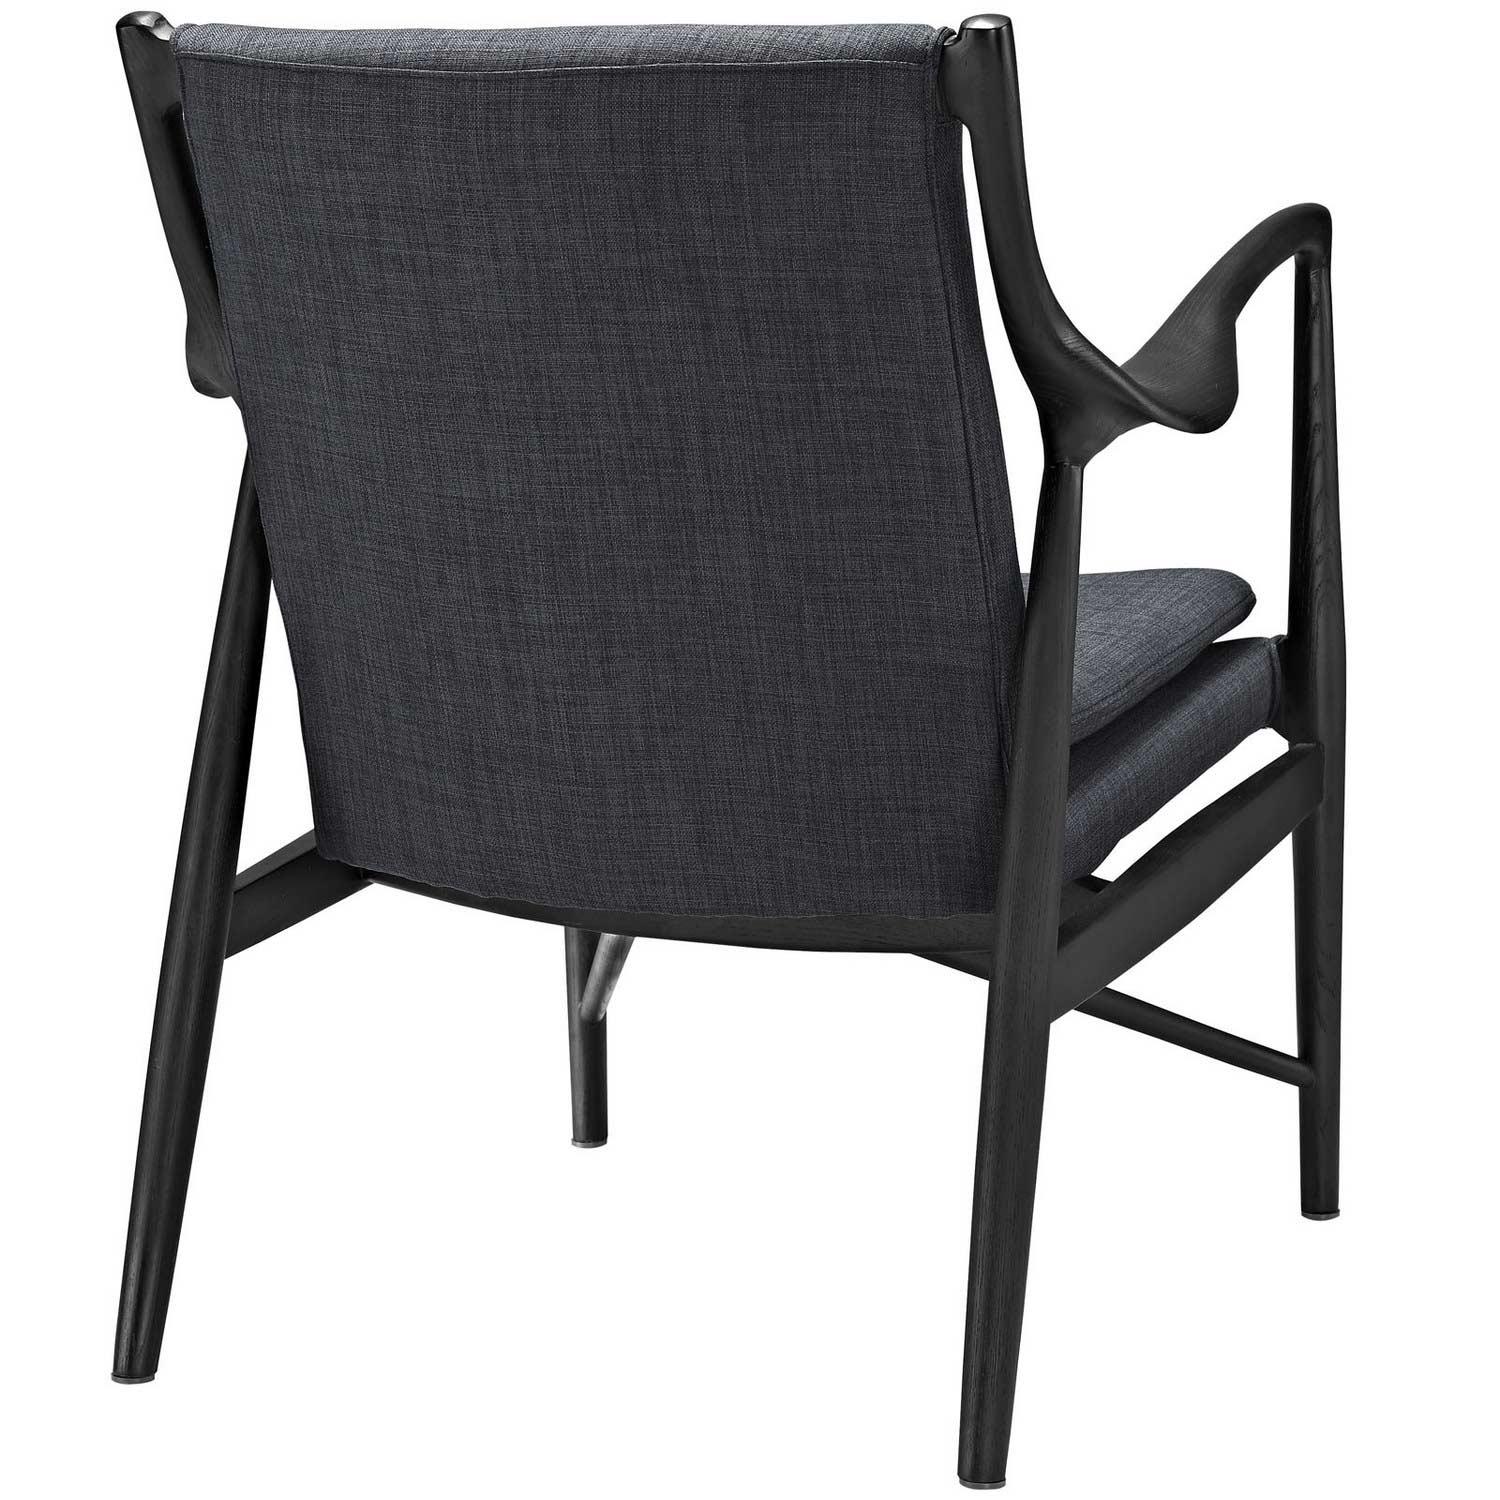 Modway Makeshift Upholstered Lounge Chair - Black/Gray